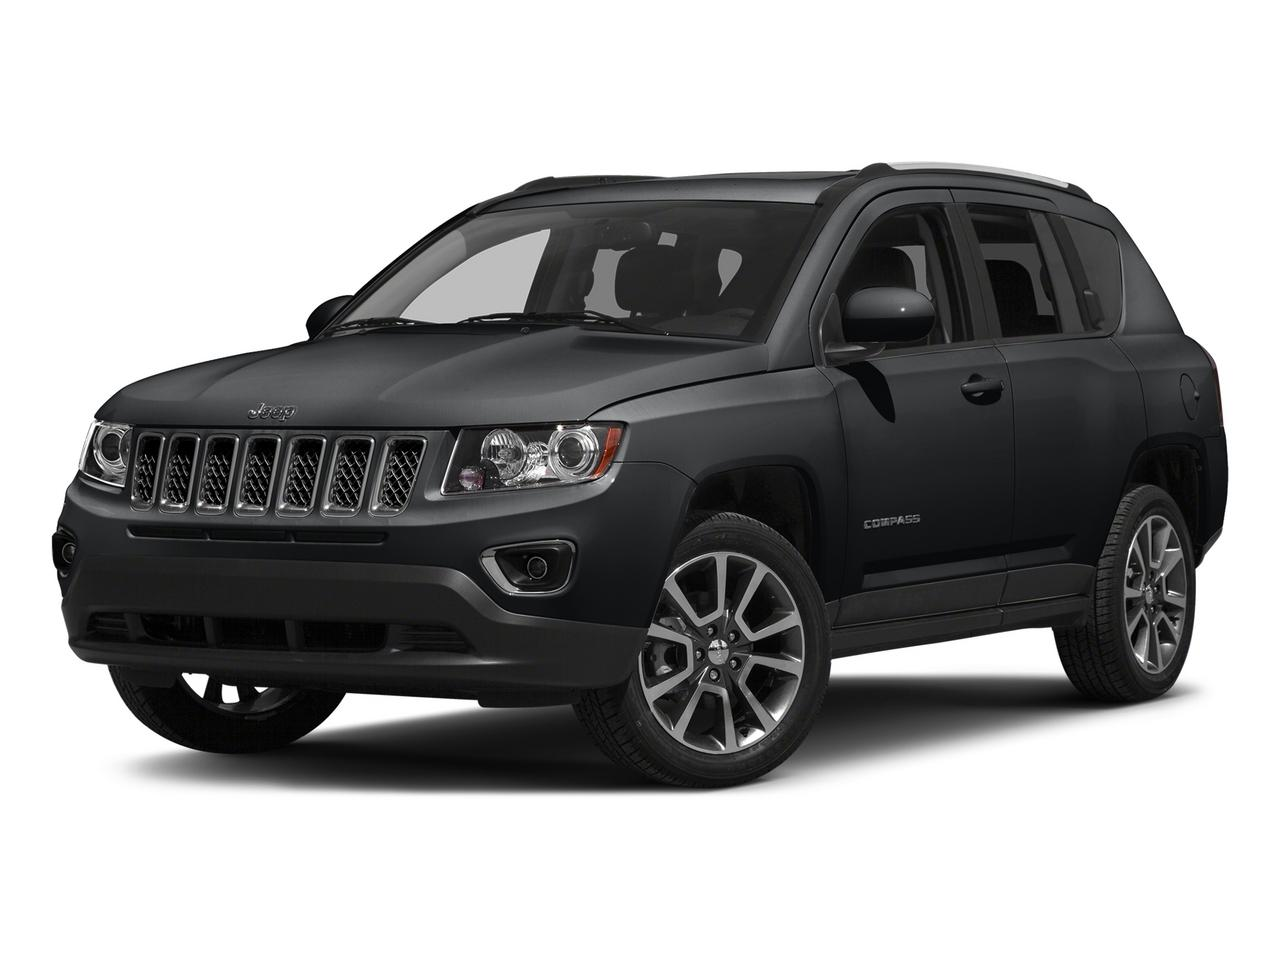 2015 Jeep Compass Vehicle Photo in Milford, OH 45150